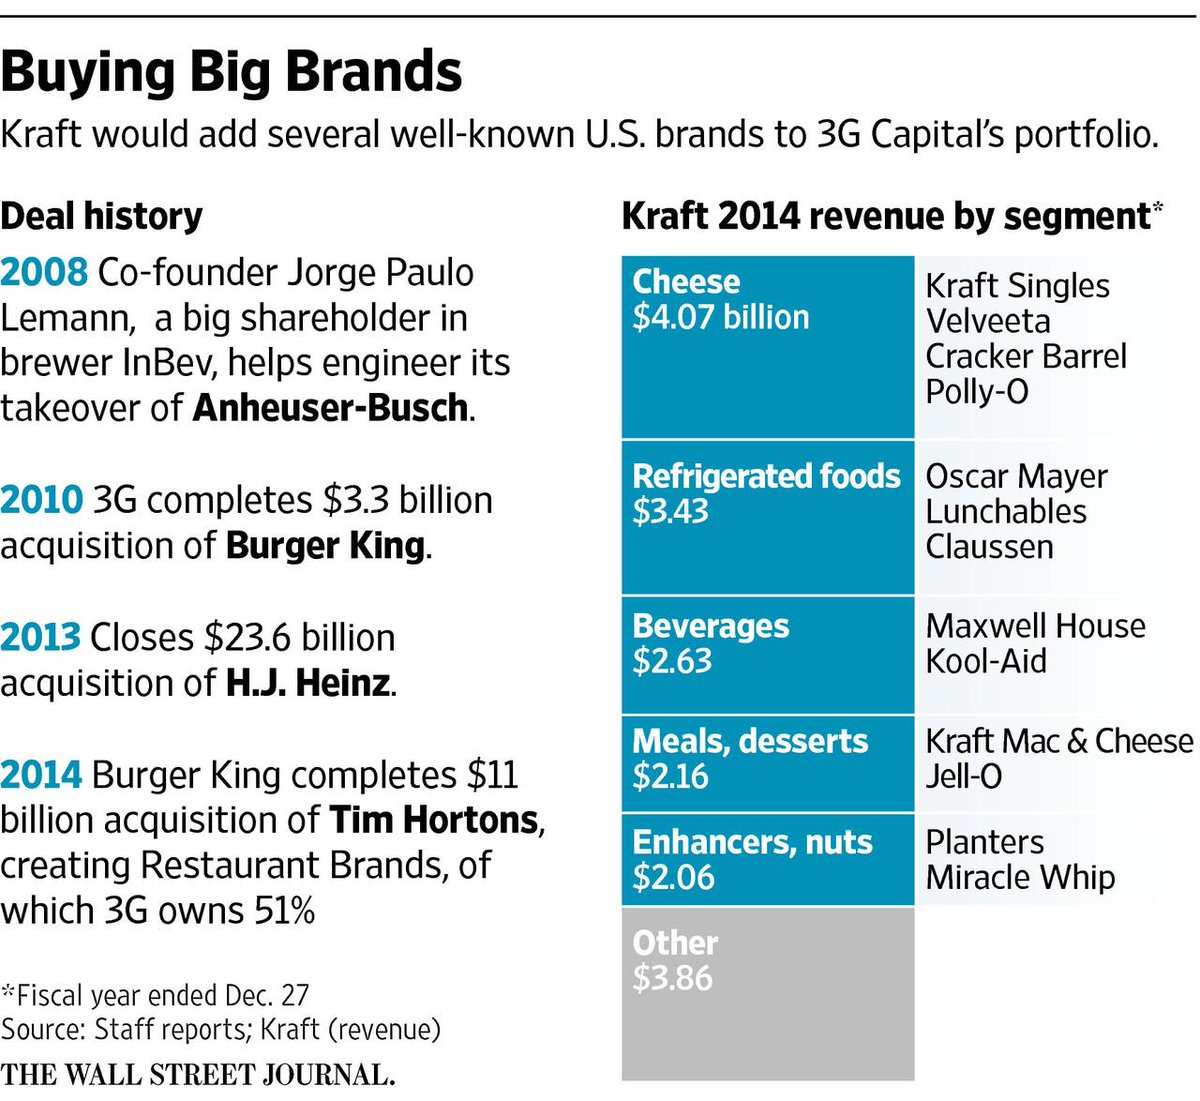 Kraft/Heinz deal will create world's 5th largest food & beverage company. http://t.co/zIx1Kwlvmu http://t.co/zkaZiklkM0